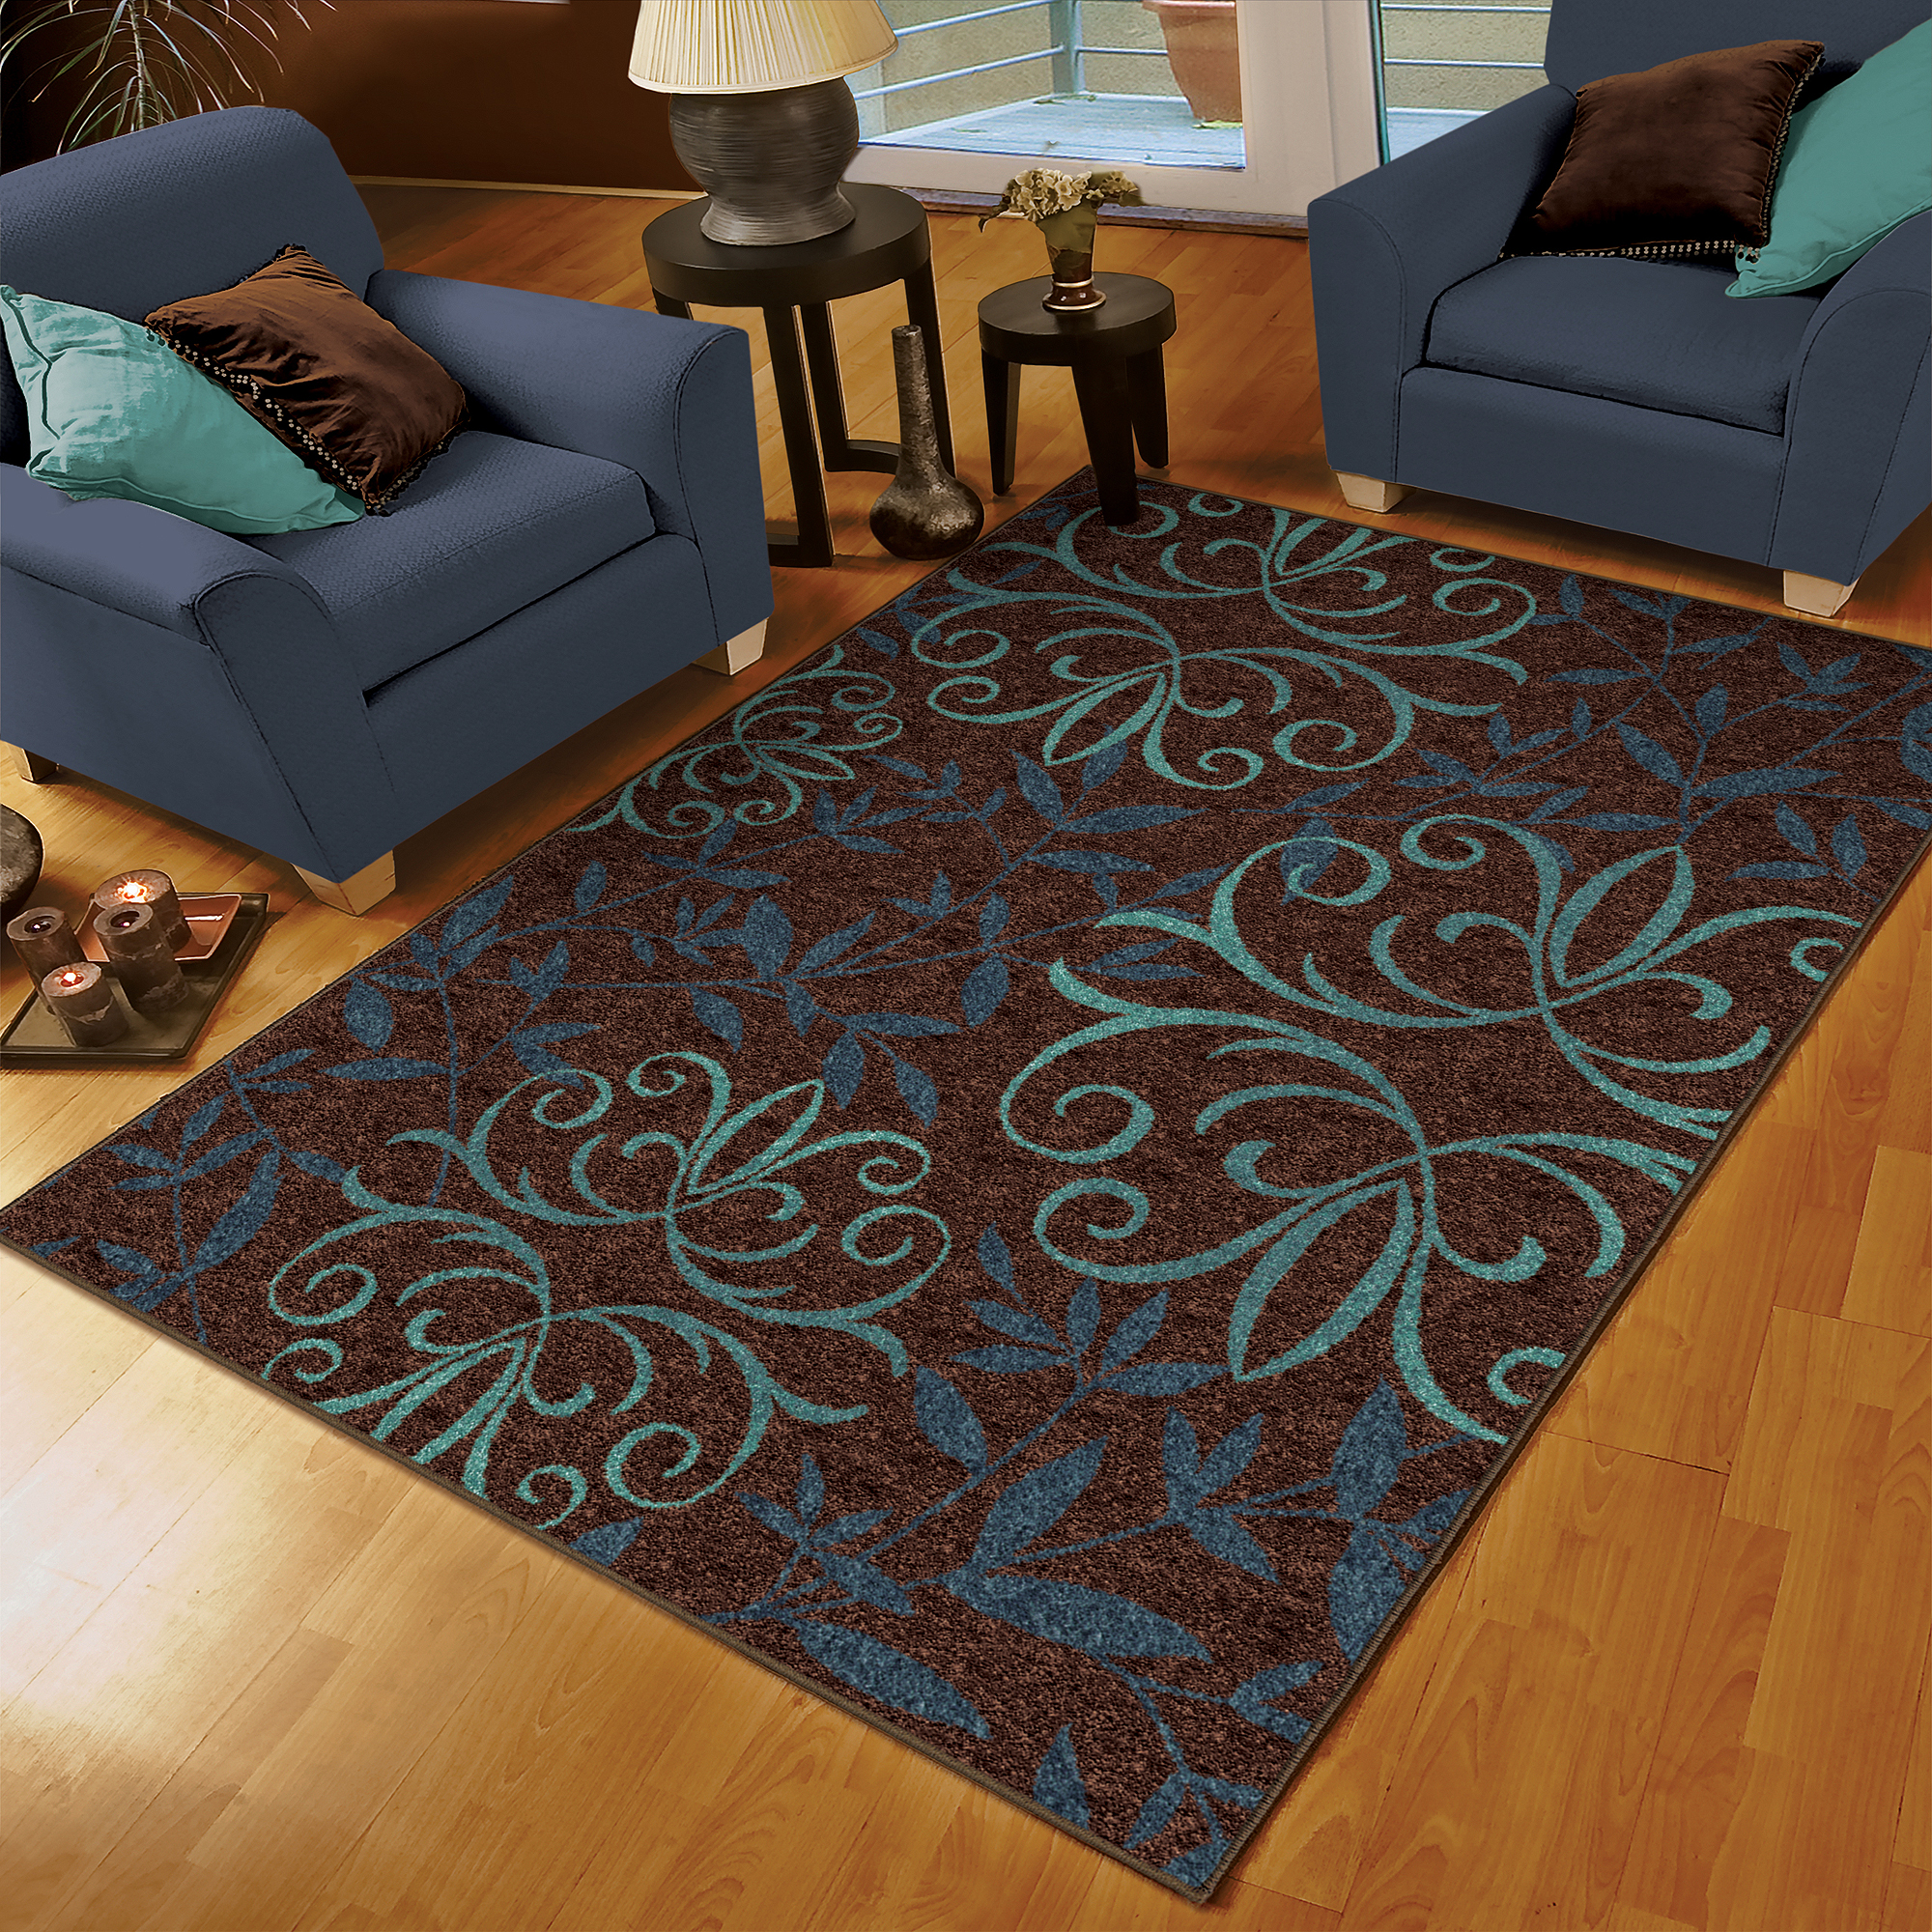 "Orian Voyager Area Rug, Blue, 5'3"" x 7'6"" by Orian Rugs Inc"